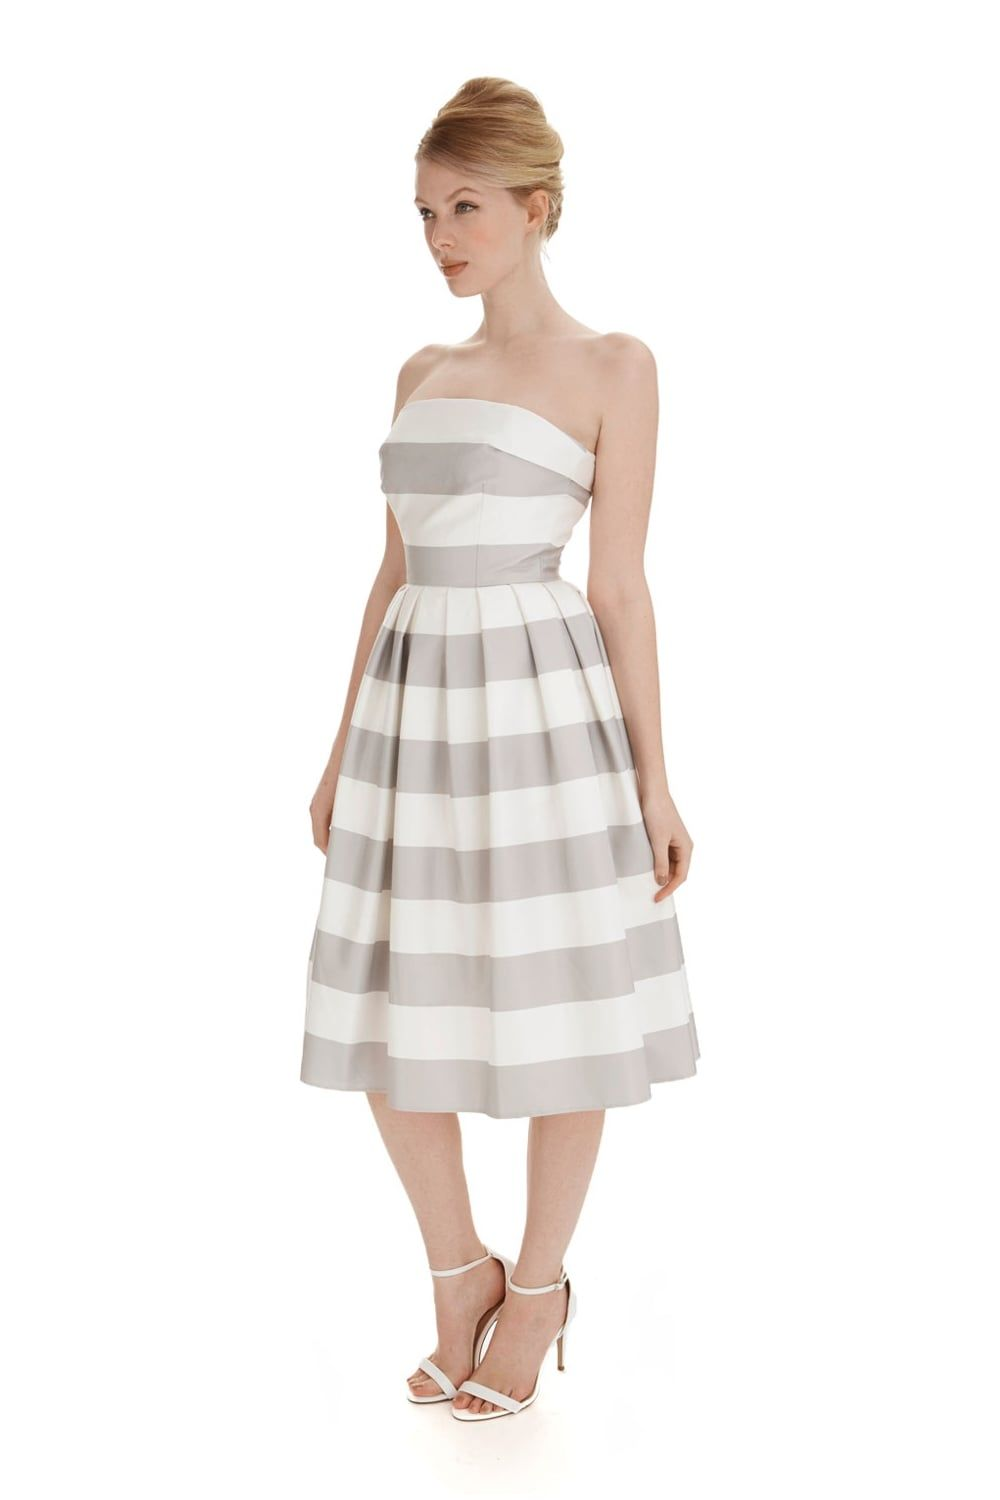 Sainttropez prom dress outfits pinterest striped prom dresses